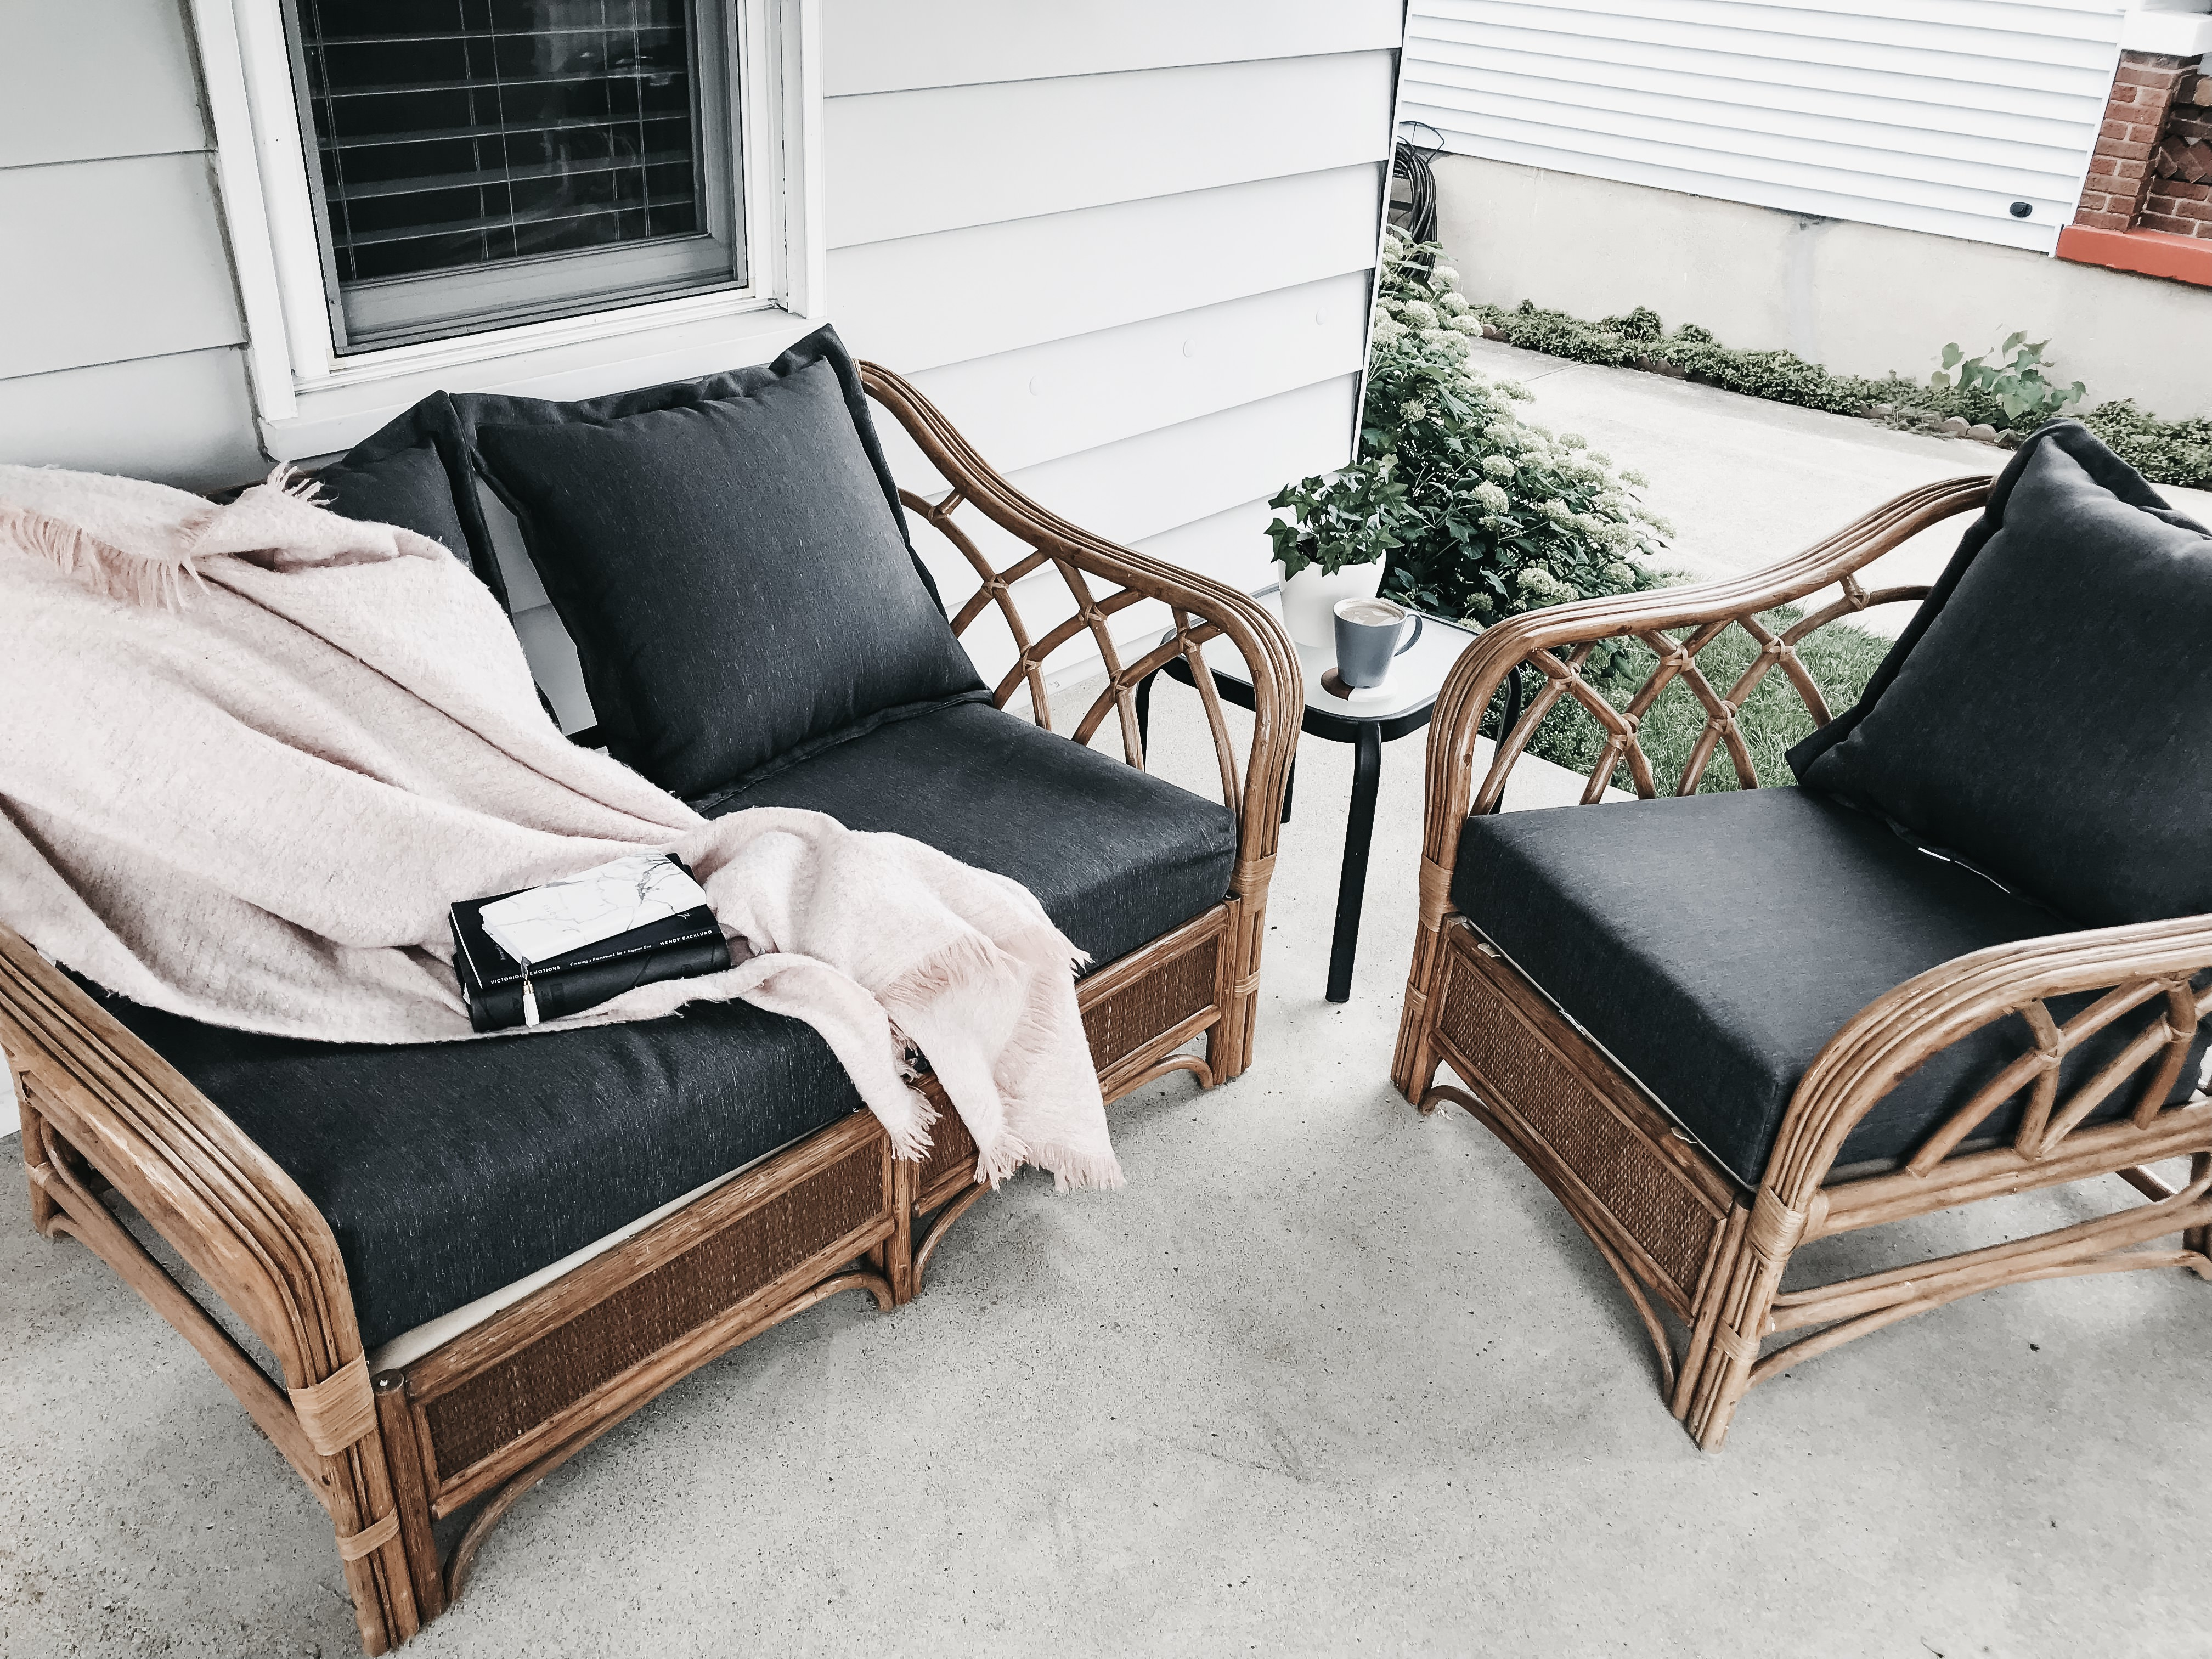 How to Create an Outdoor Space You Love 5